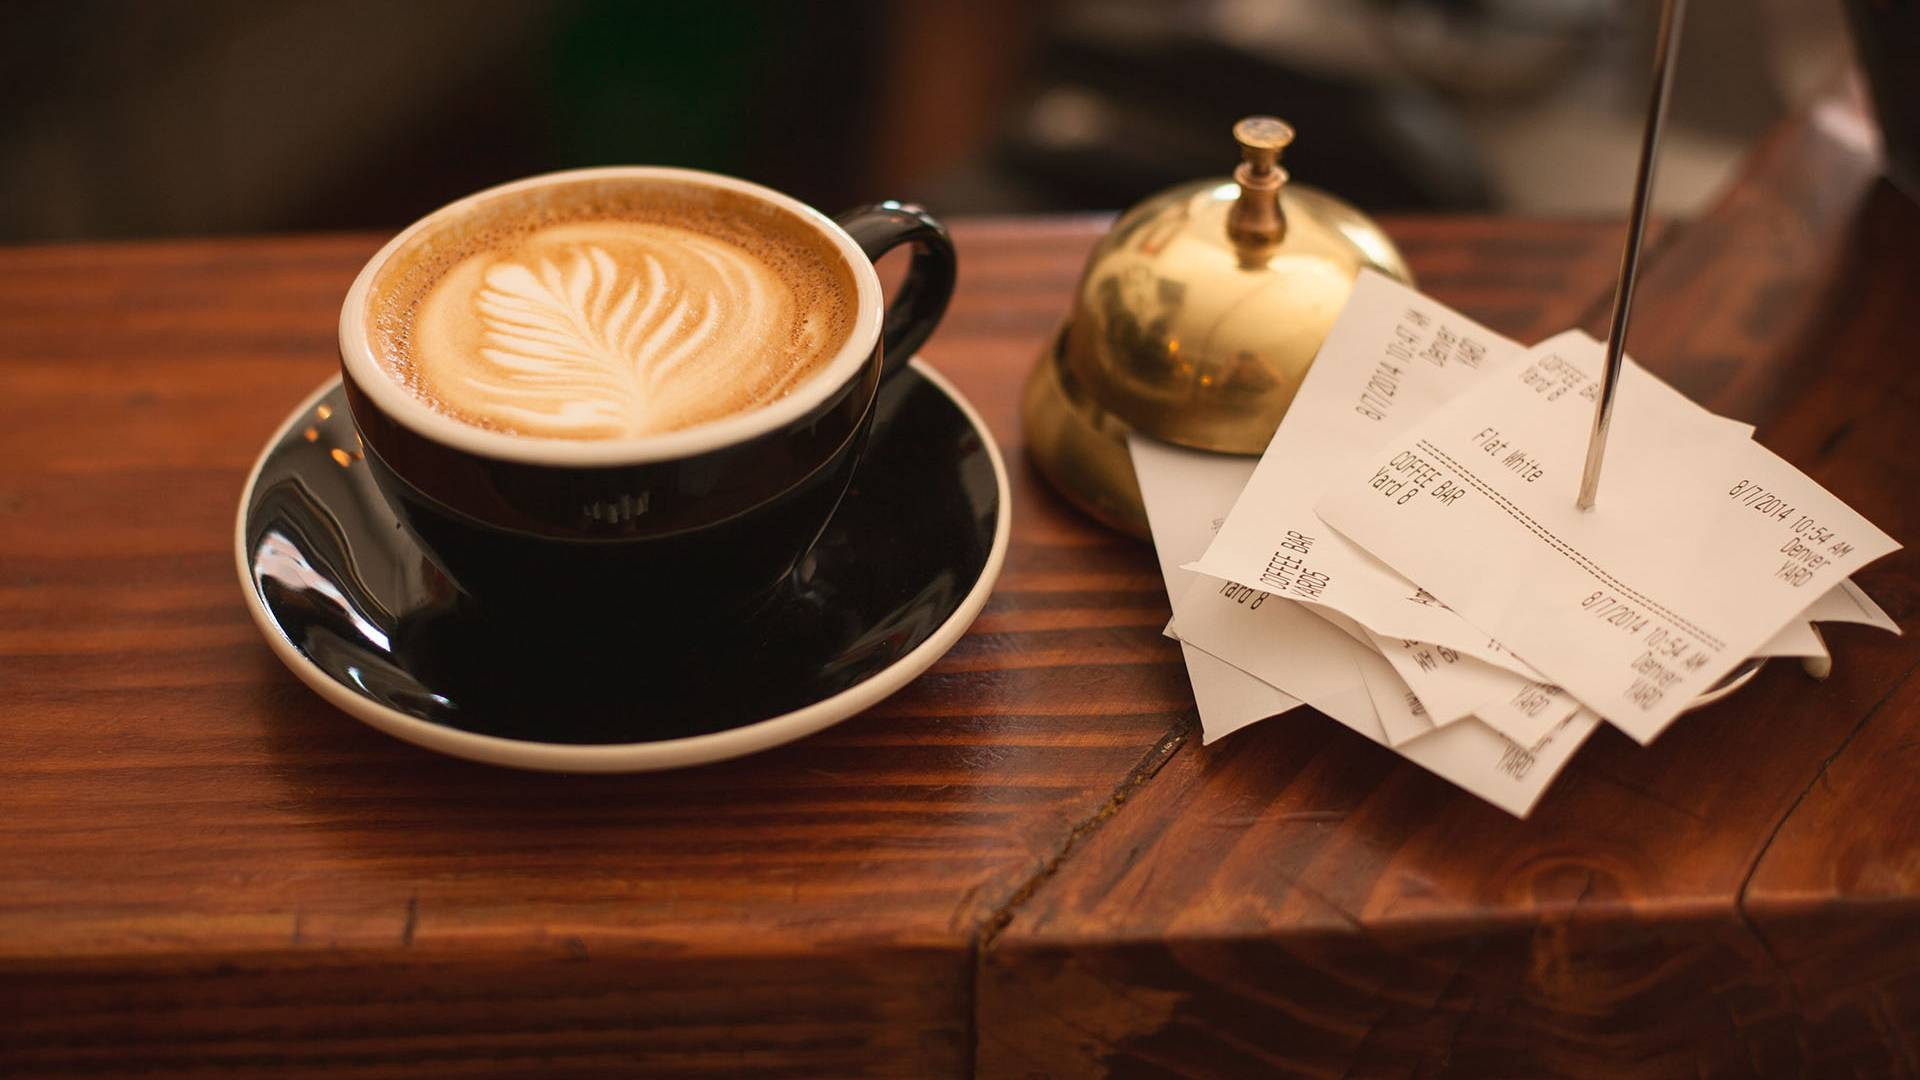 Coffee and receipts